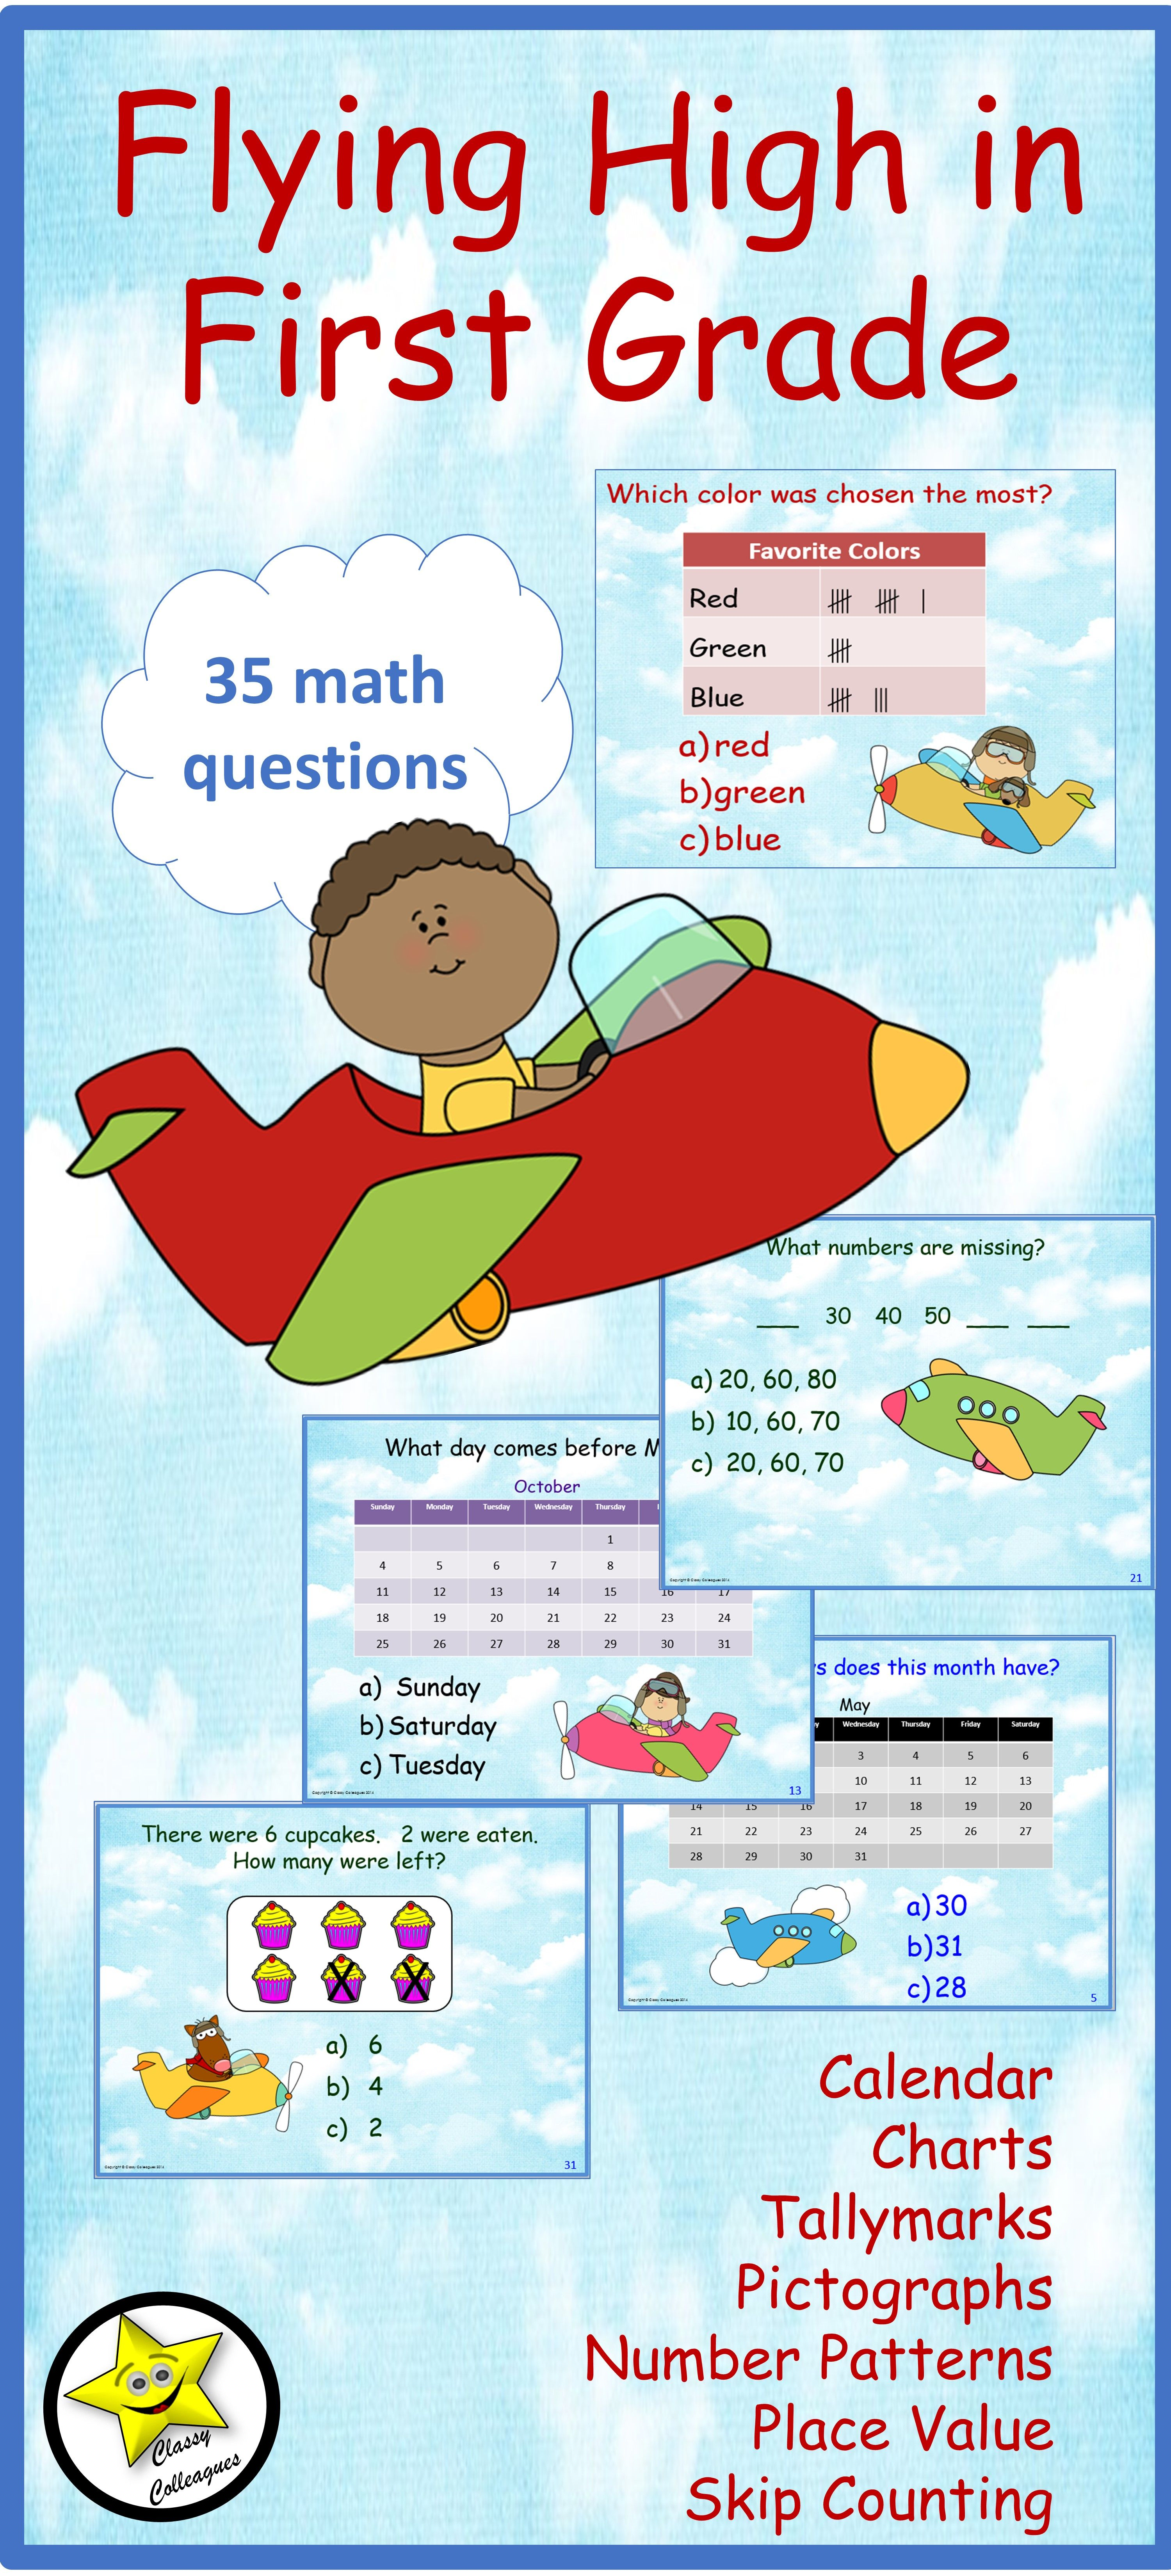 First Grade Math Review and Test Prep | Number patterns, Math skills ...